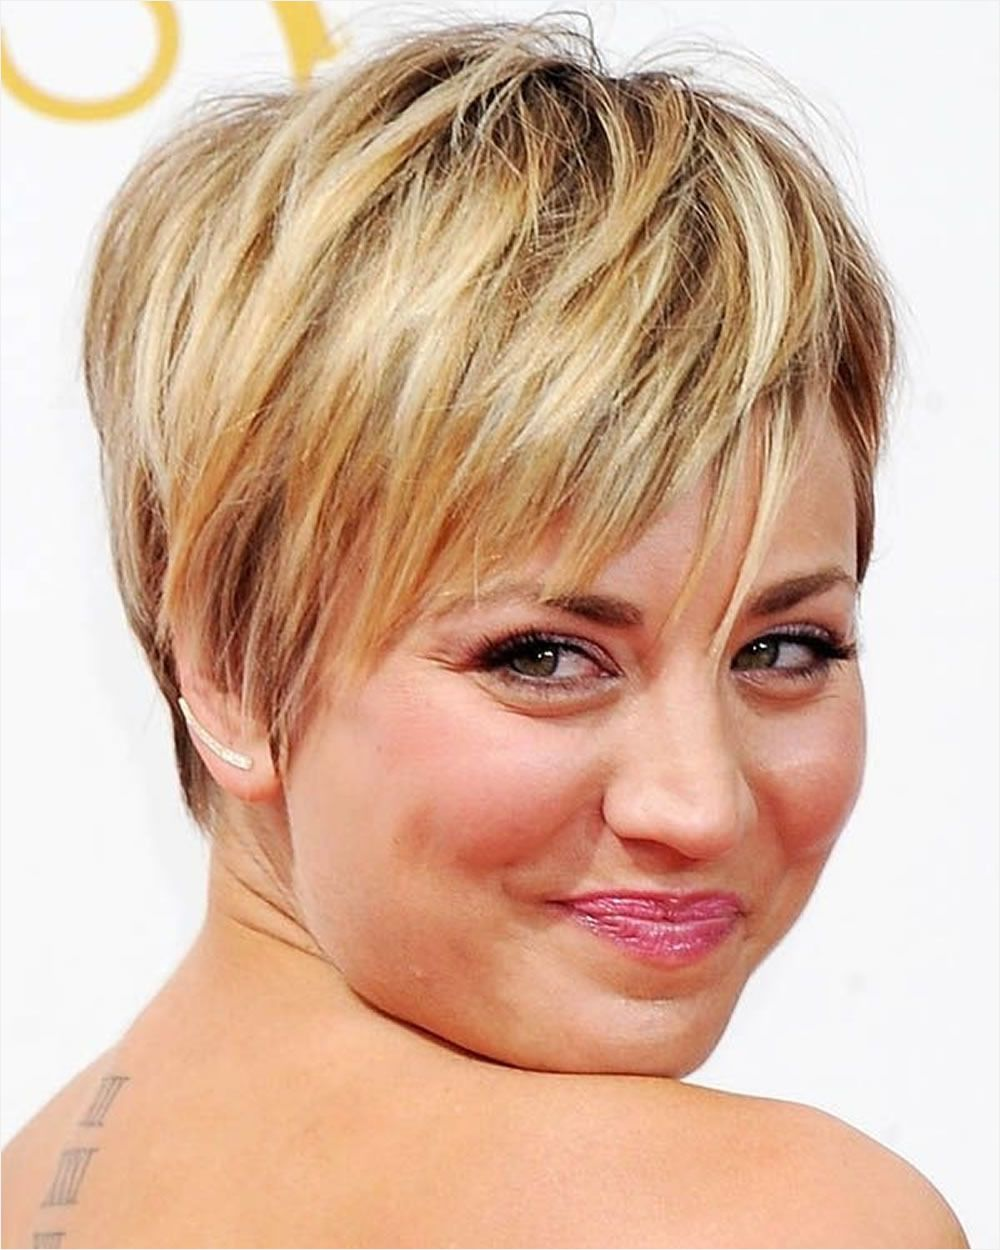 Pixie Hairstyles Fine Hair For Round Face 2020 2021 Beautiful Short Hairstyles Fo Short Hair Styles For Round Faces Messy Short Hair Hairstyles For Round Faces